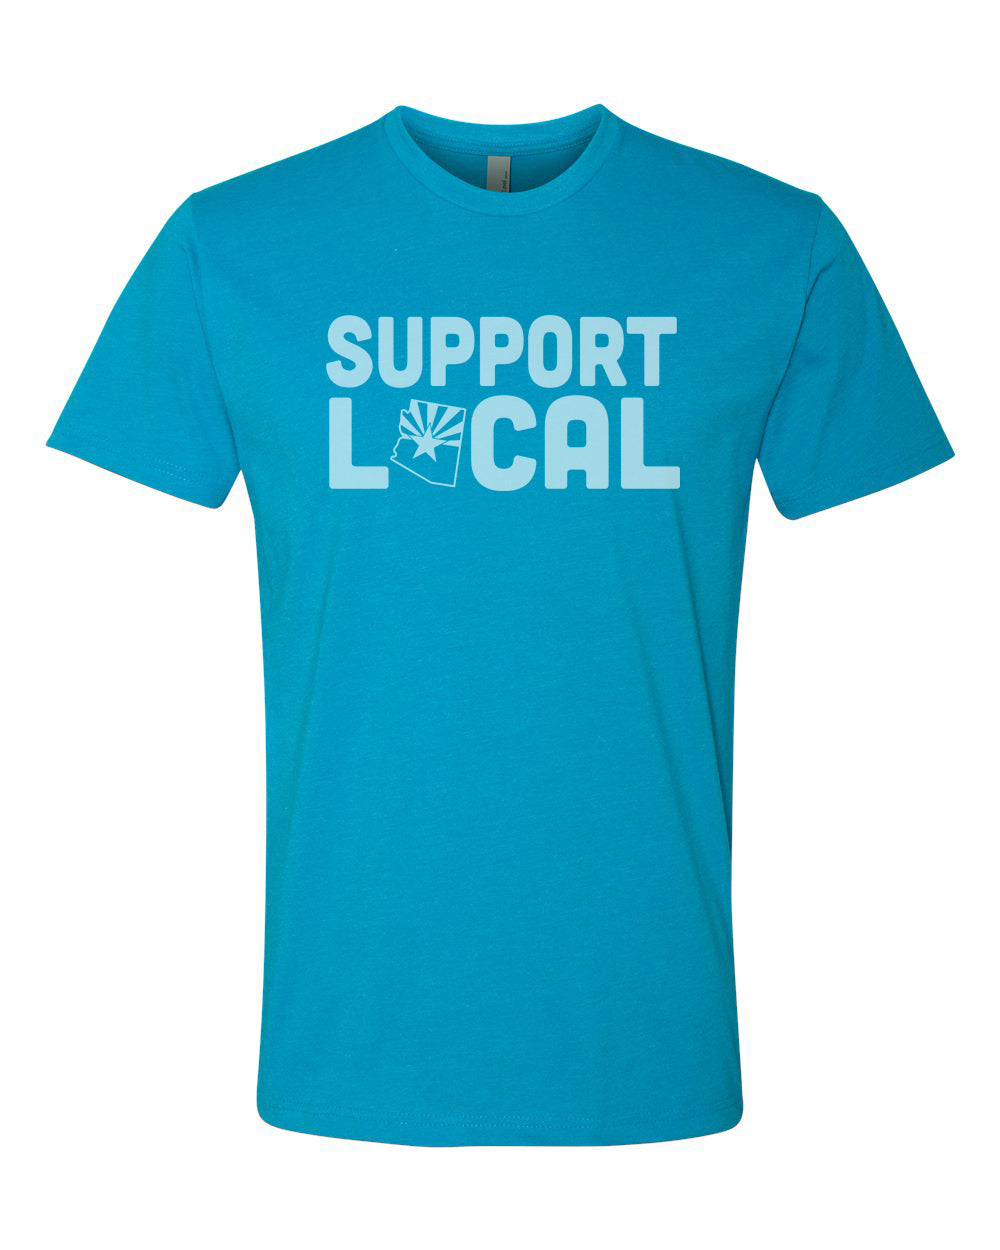 Support Local (AZ PRIDE TURQUOISE)